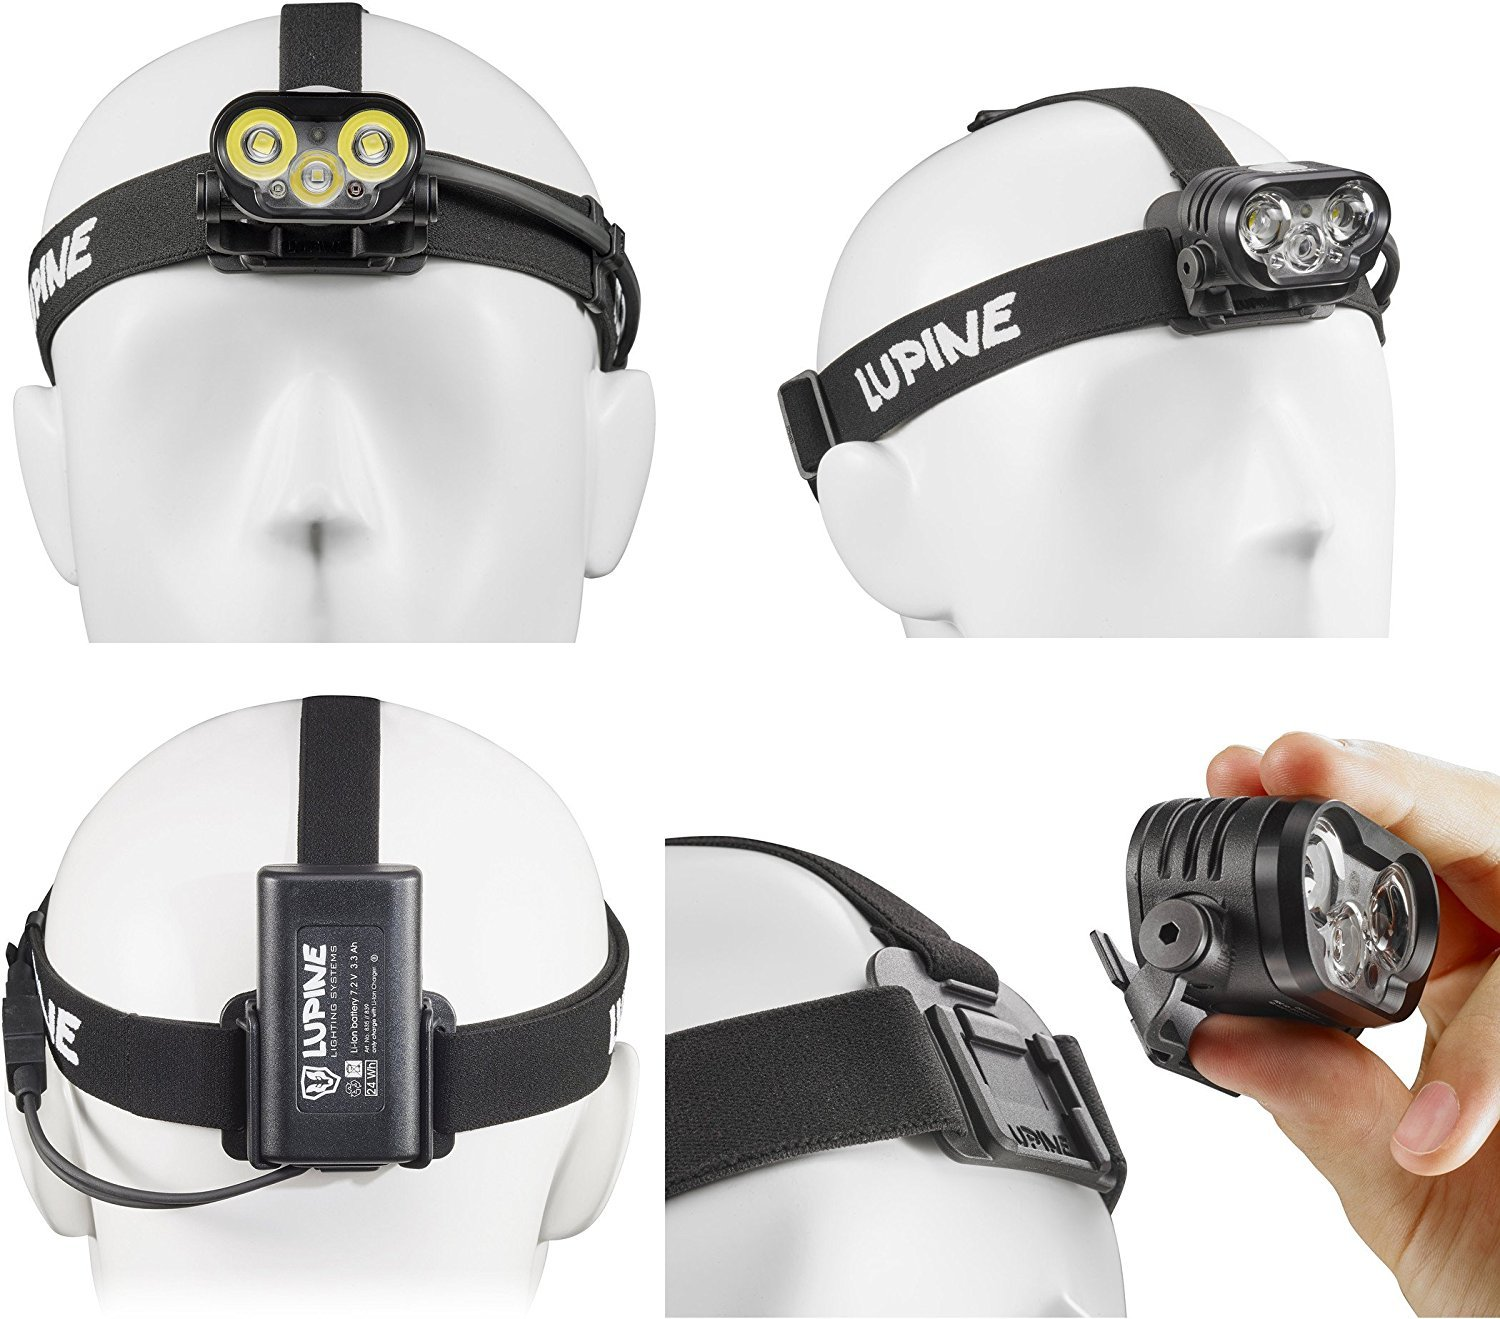 Lupine Lighting Systems BLIKA X4 2100 Lumen LED Headlamp System by Lupine Lighting Systems (Image #1)